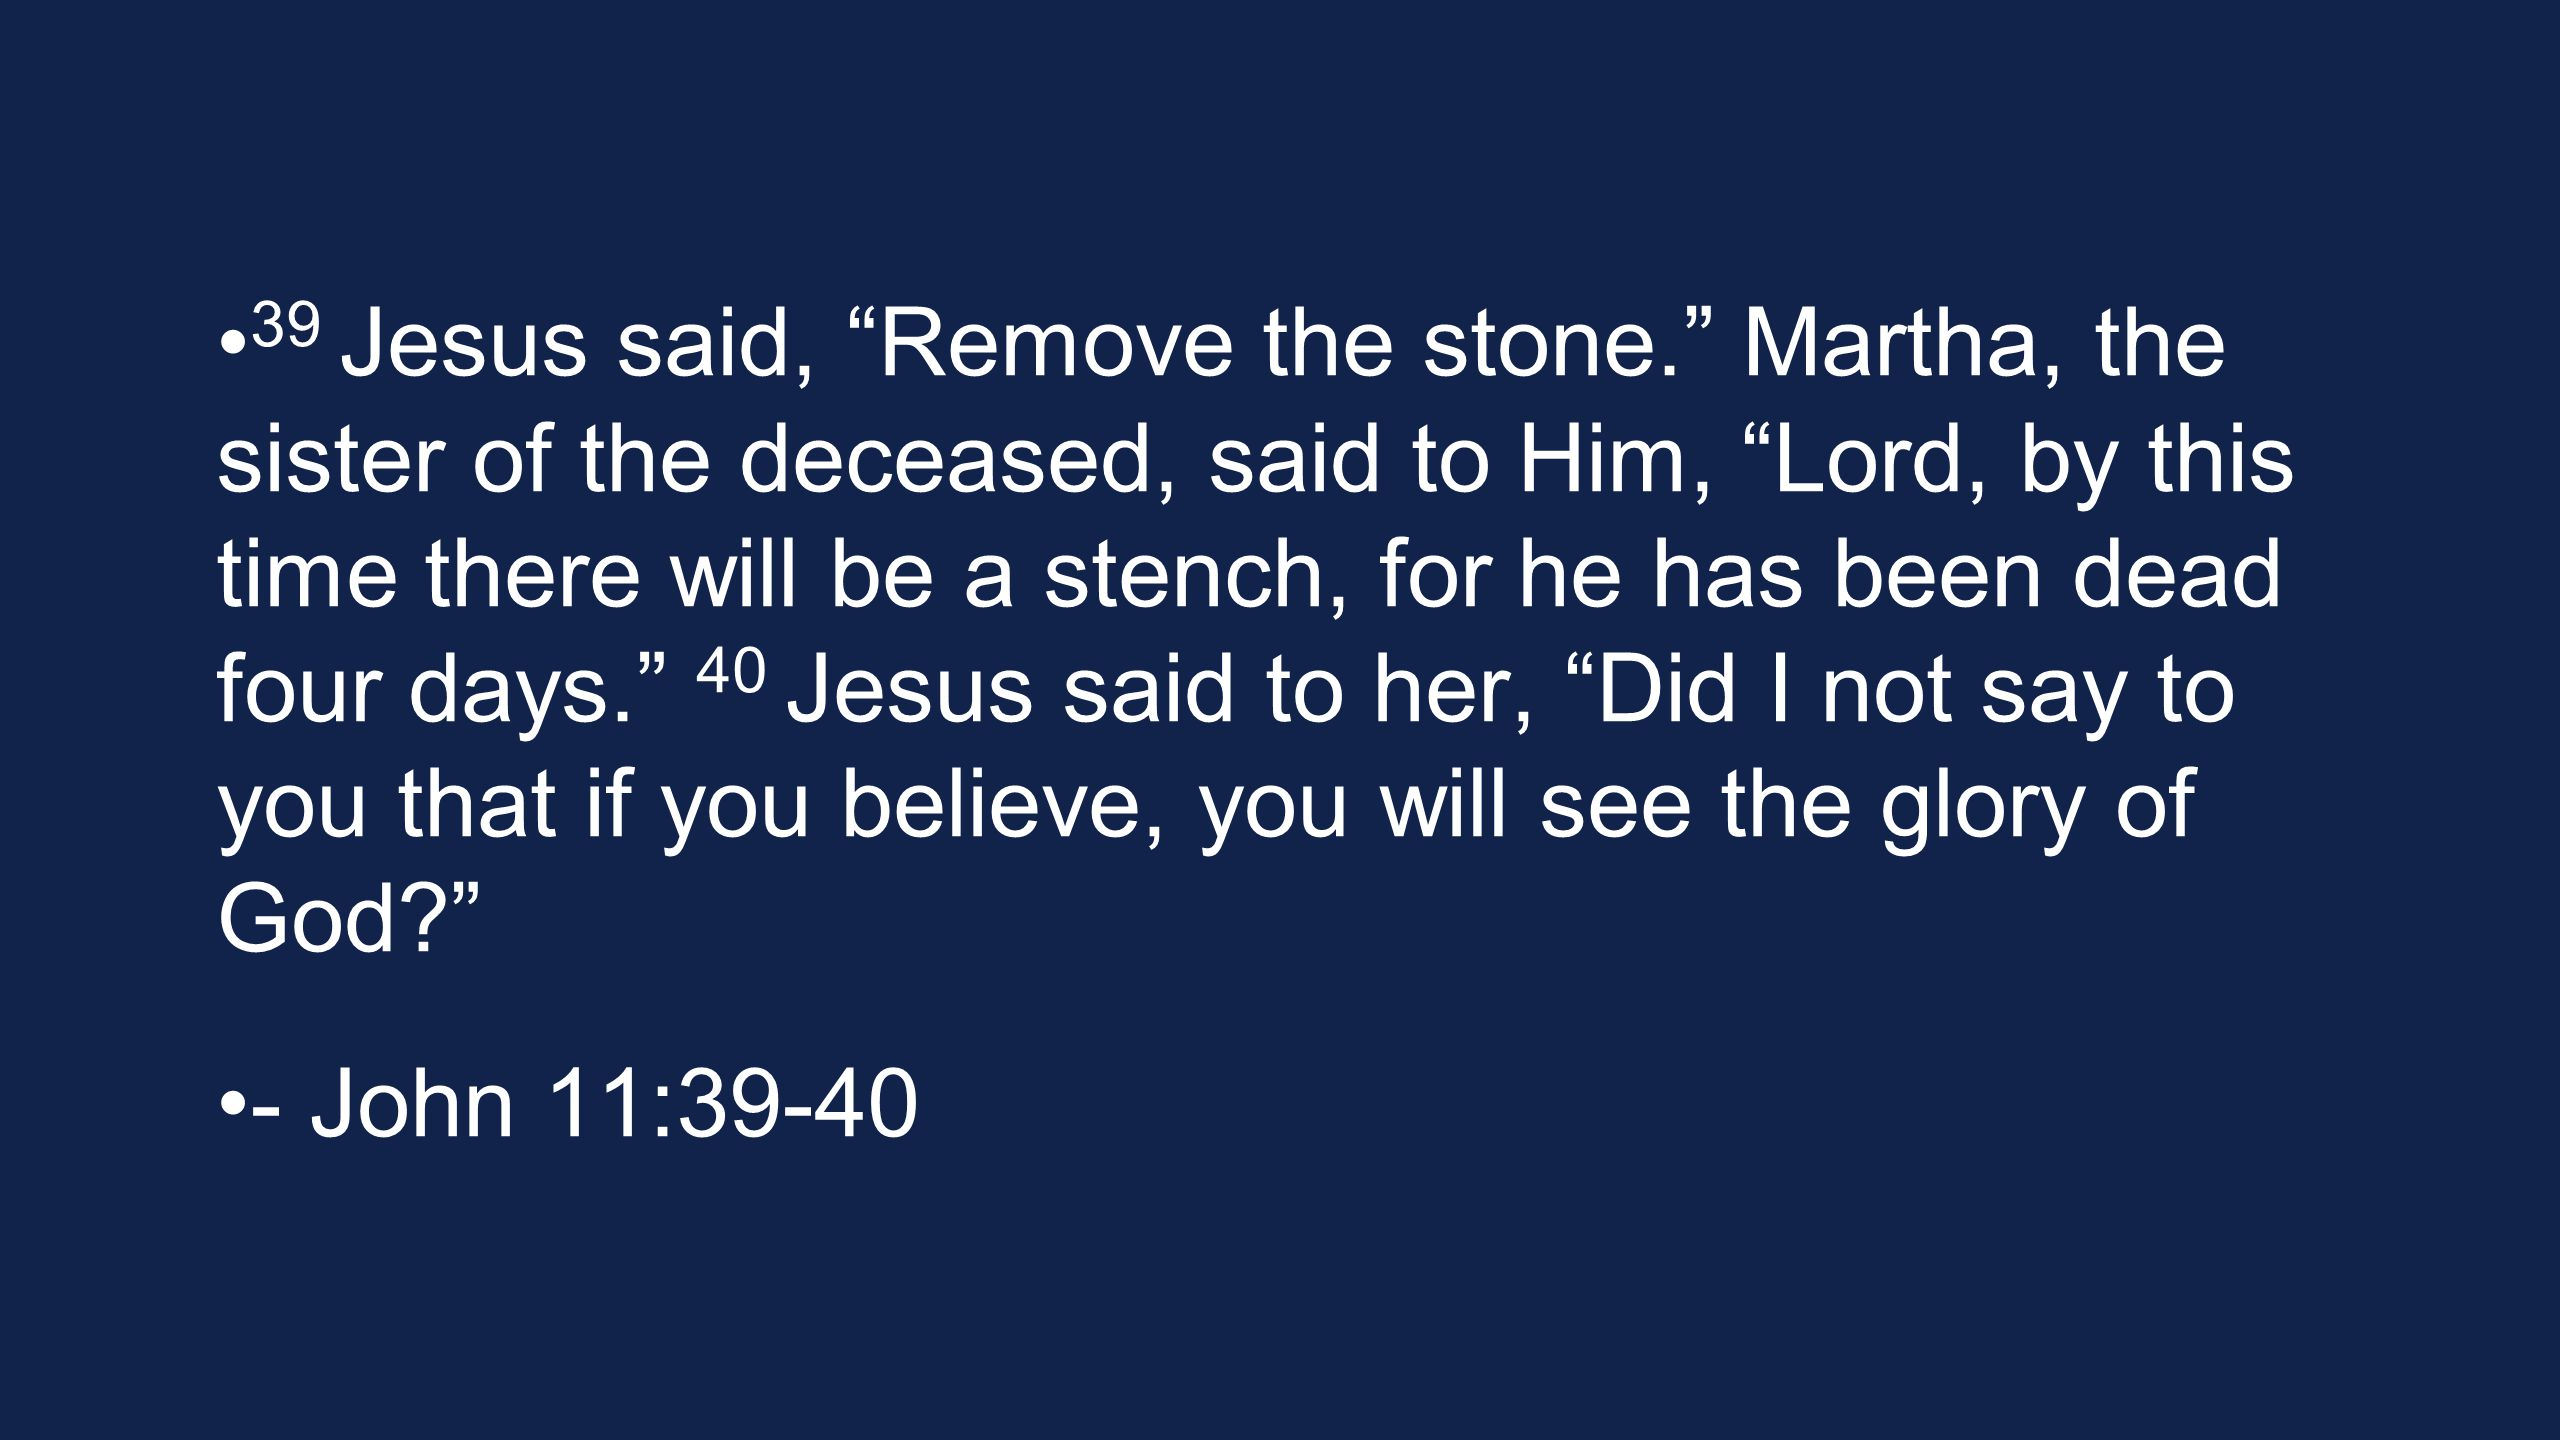 39 Jesus said, Remove the stone. Martha, the sister of the deceased, said to Him, Lord, by this time there will be a stench, for he has been dead four days. 40 Jesus said to her, Did I not say to you that if you believe, you will see the glory of God? - John 11:39-40